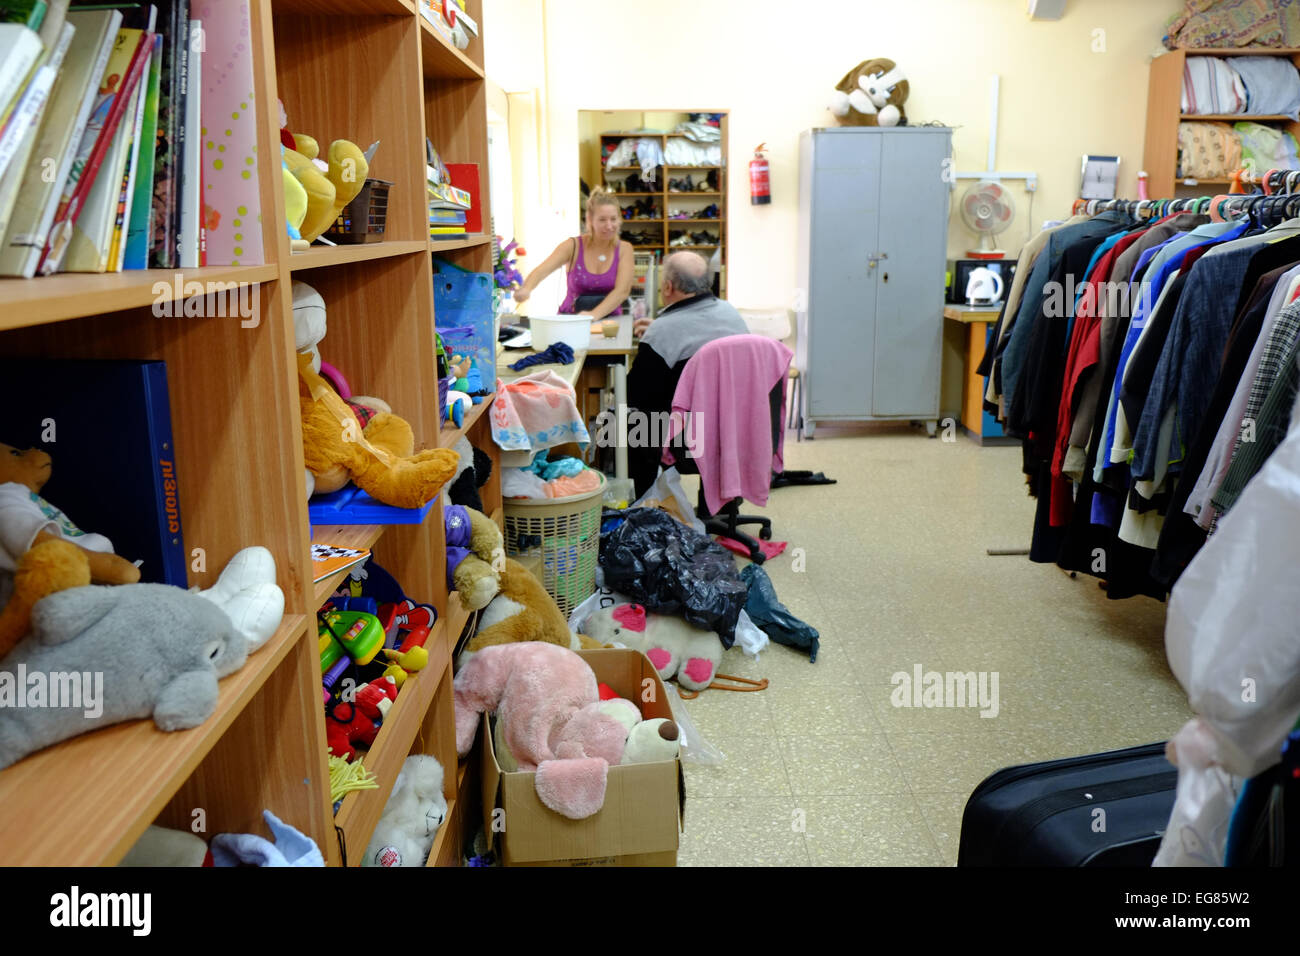 Second hand clothes shop in Emek Hefer, Israel - Stock Image